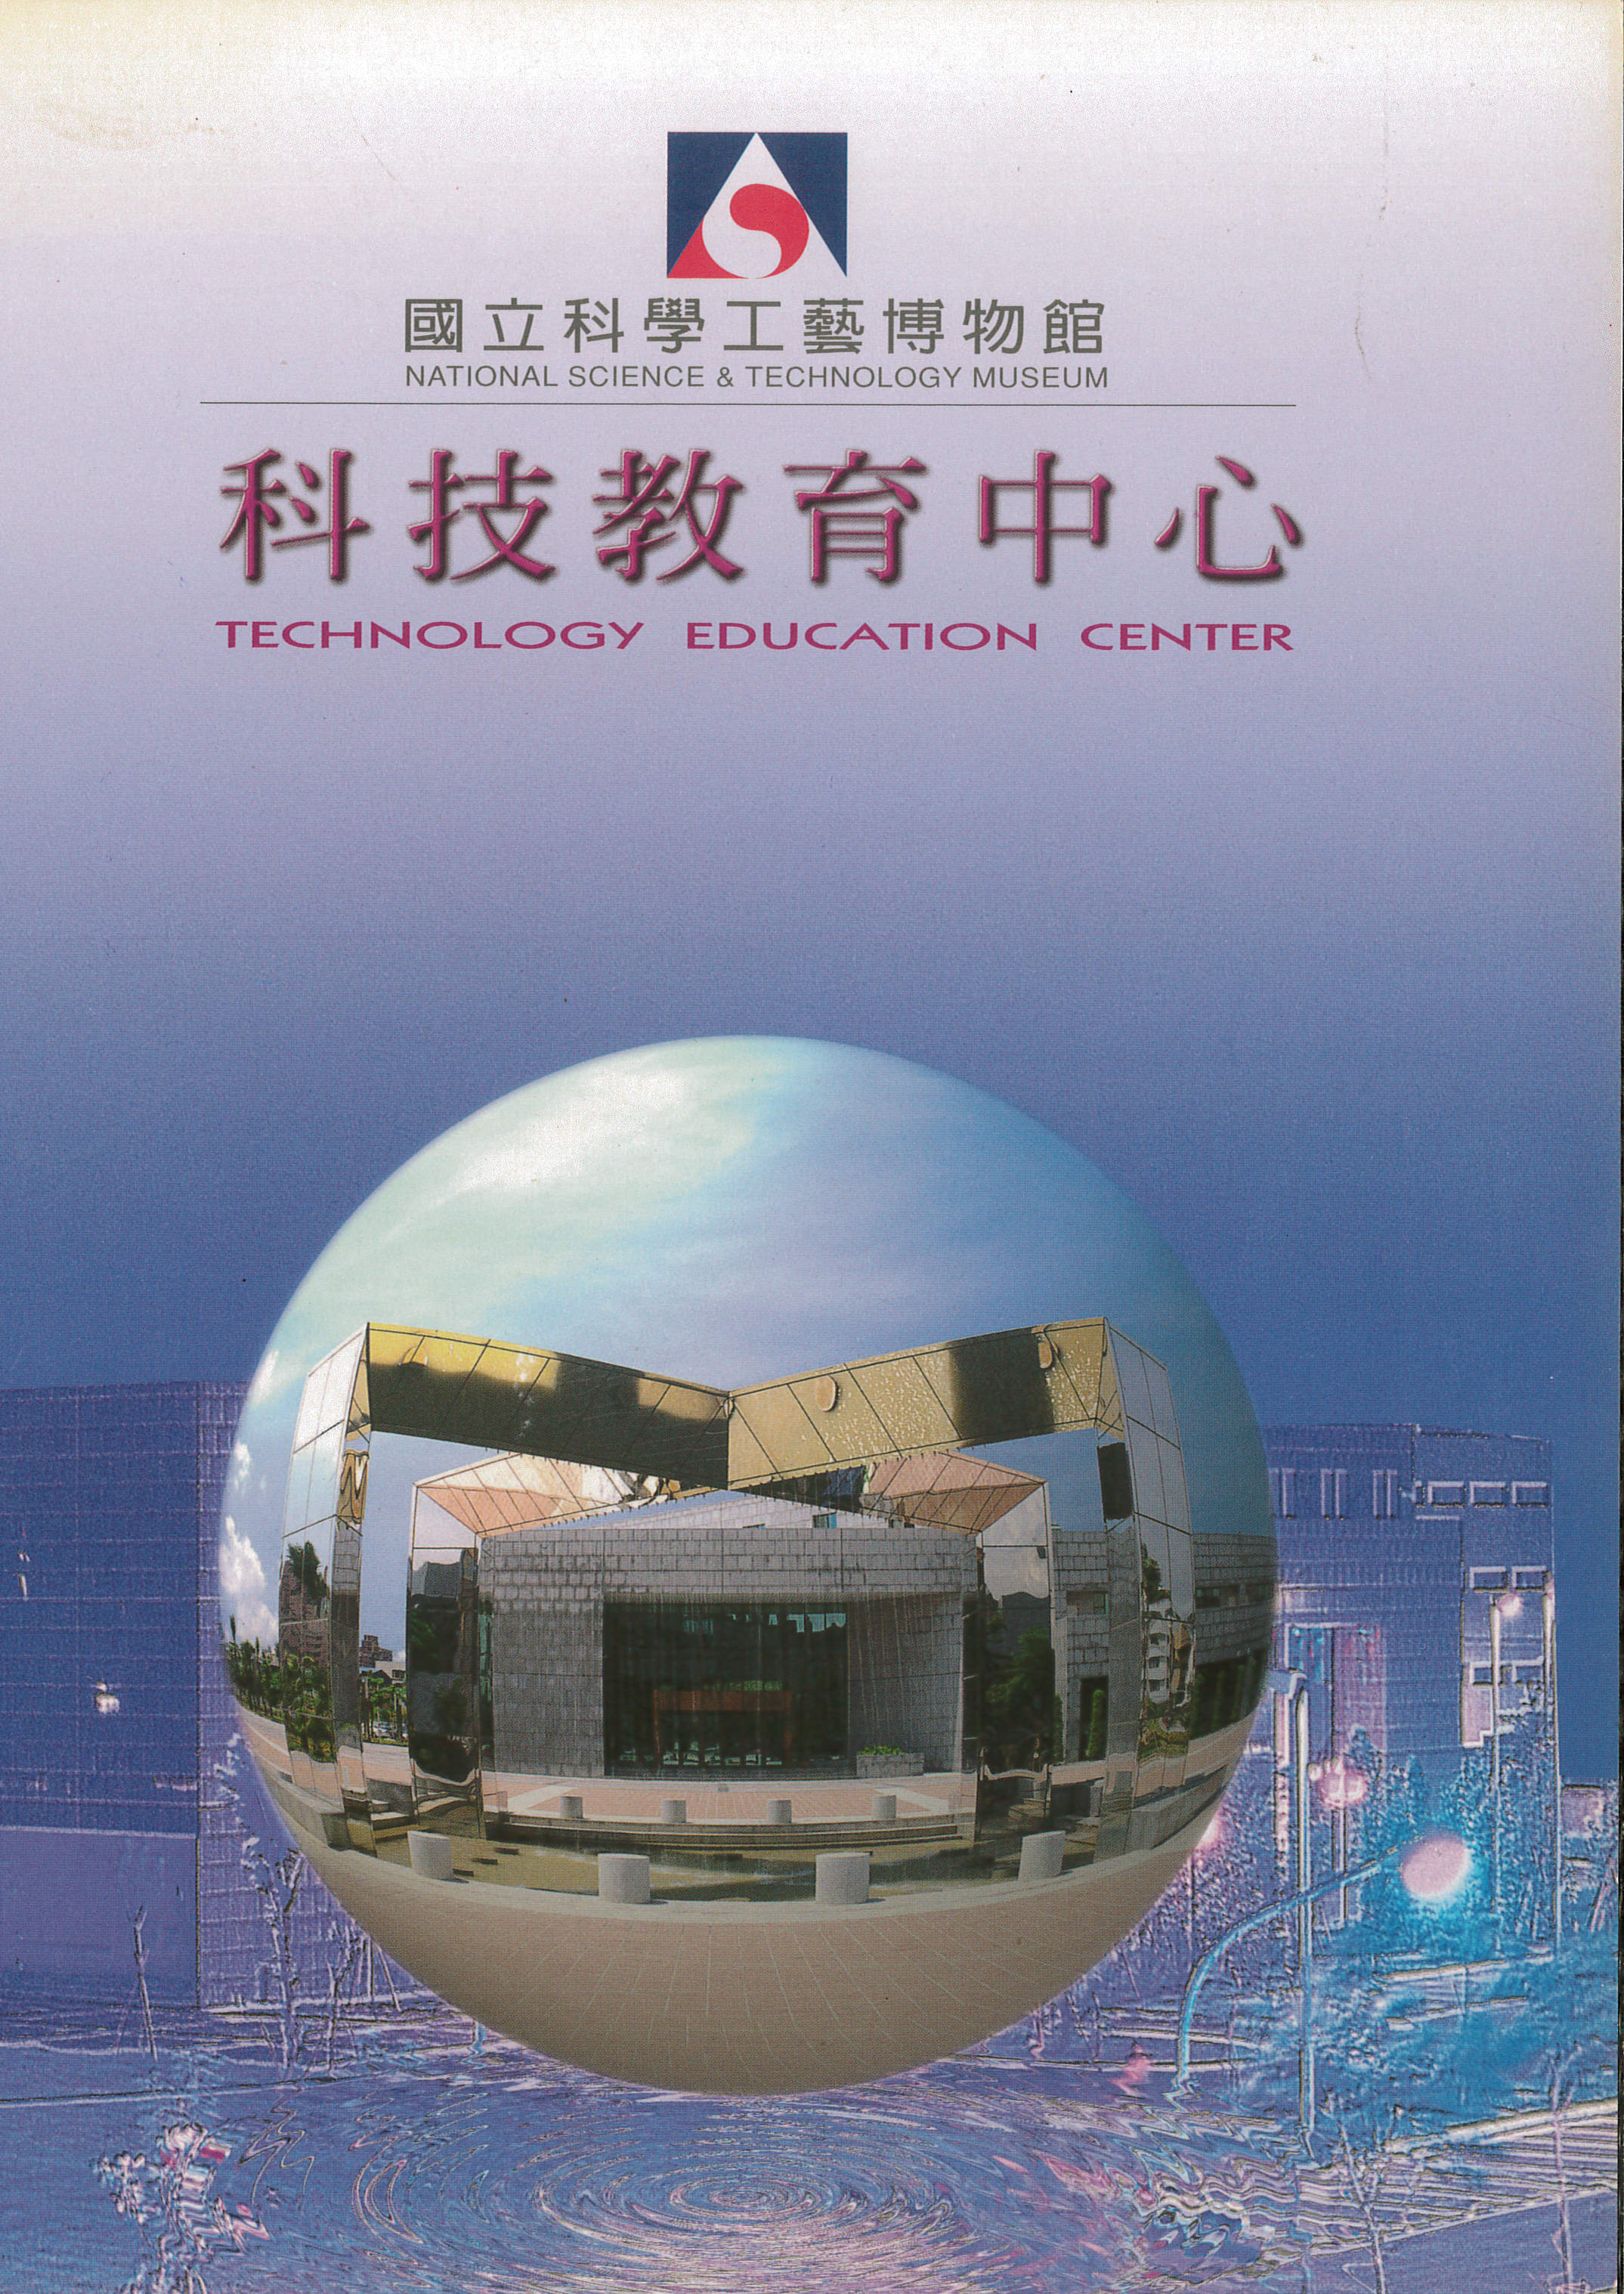 Profile of the Technology Education Center, National Science and Technology Museum